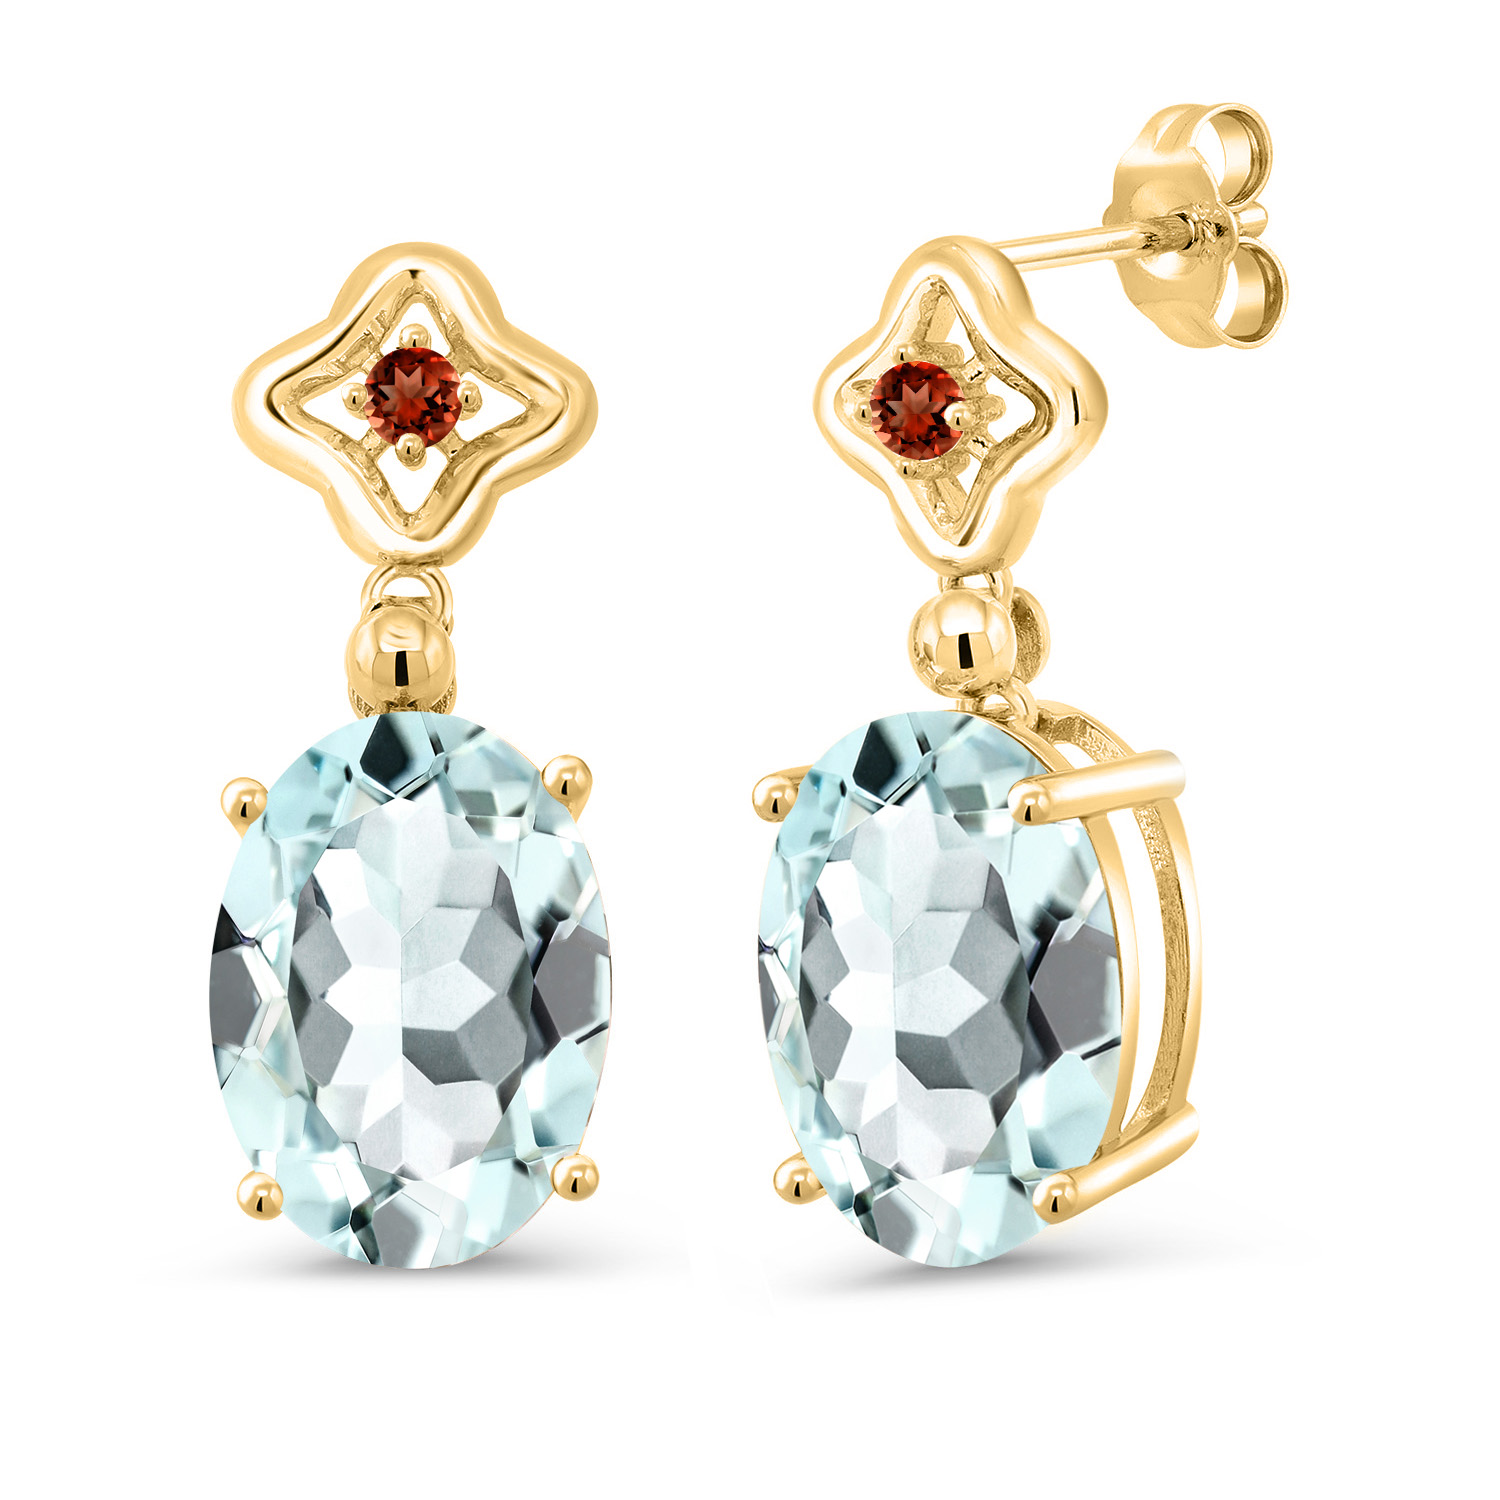 1.07 Ct Oval Red Garnet White Diamond 14K Yellow Gold Earrings